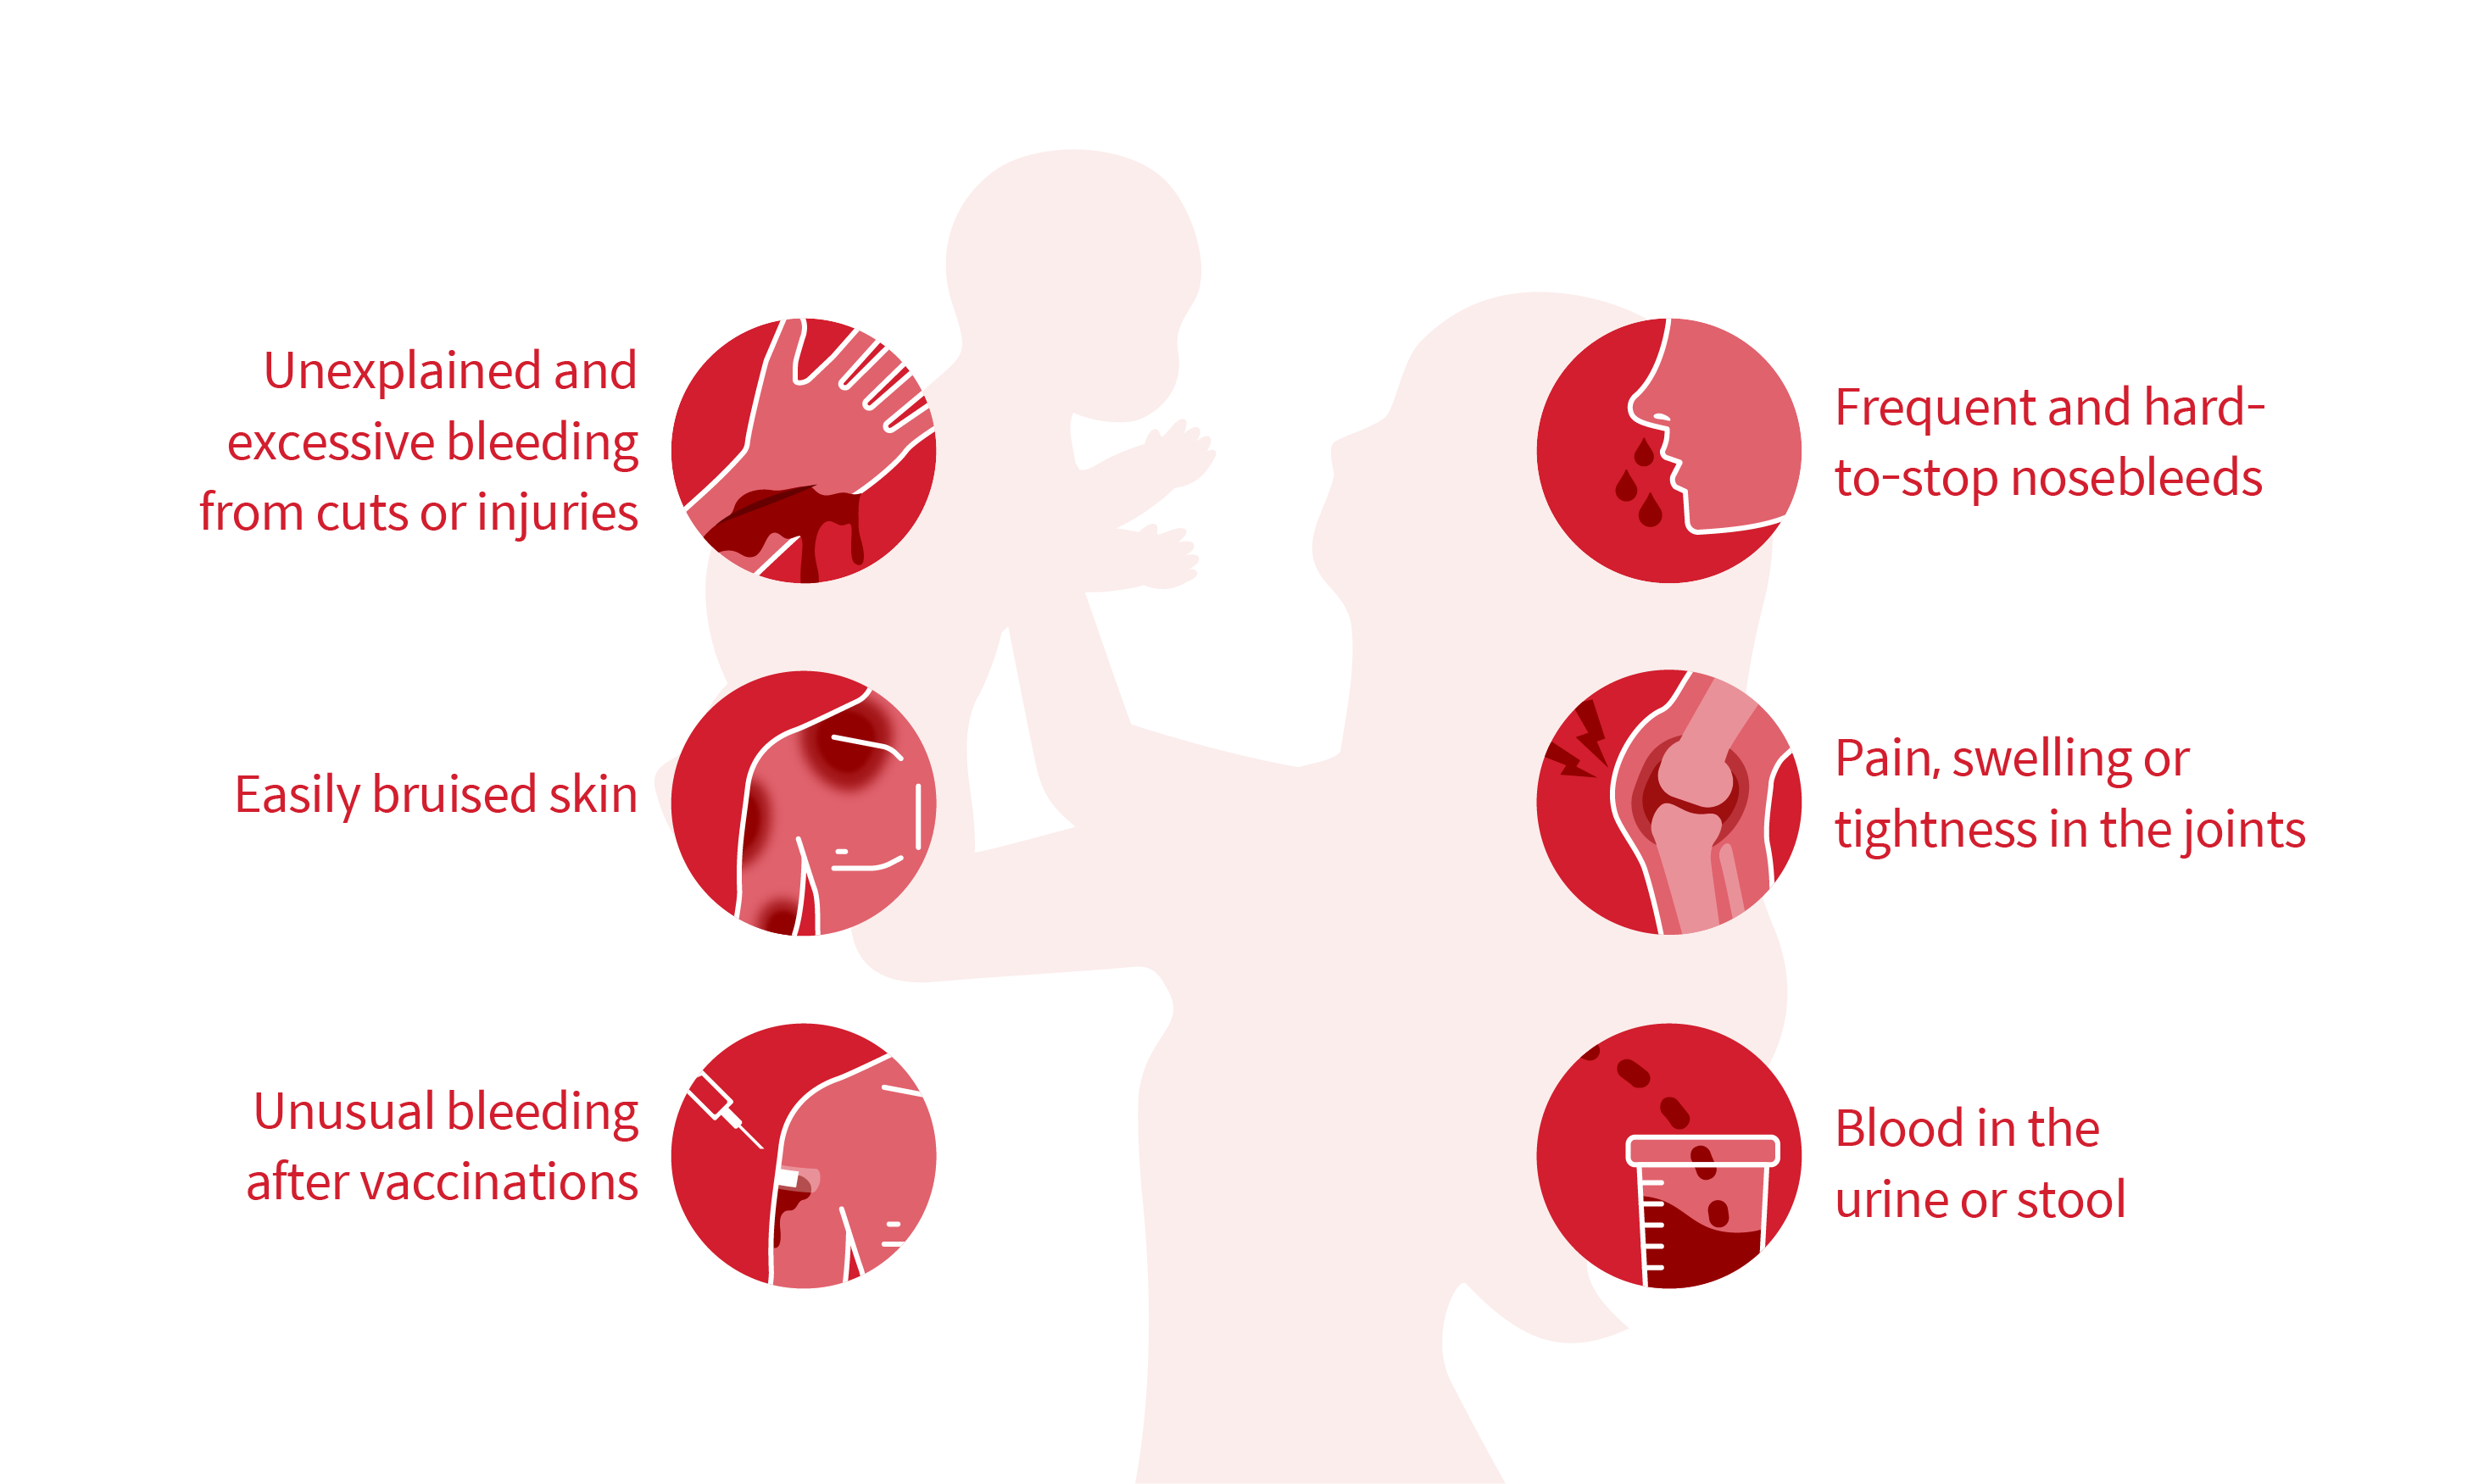 Six symptoms of Hemophilia: Unexplained and excessive bleeding from injuries, Easily bruised skin, Unusual bleeding after vaccinations, Pain, swelling or tightness in the joints, Blood in the urine or stool, Frequent and hard-to-stop nosebleeds